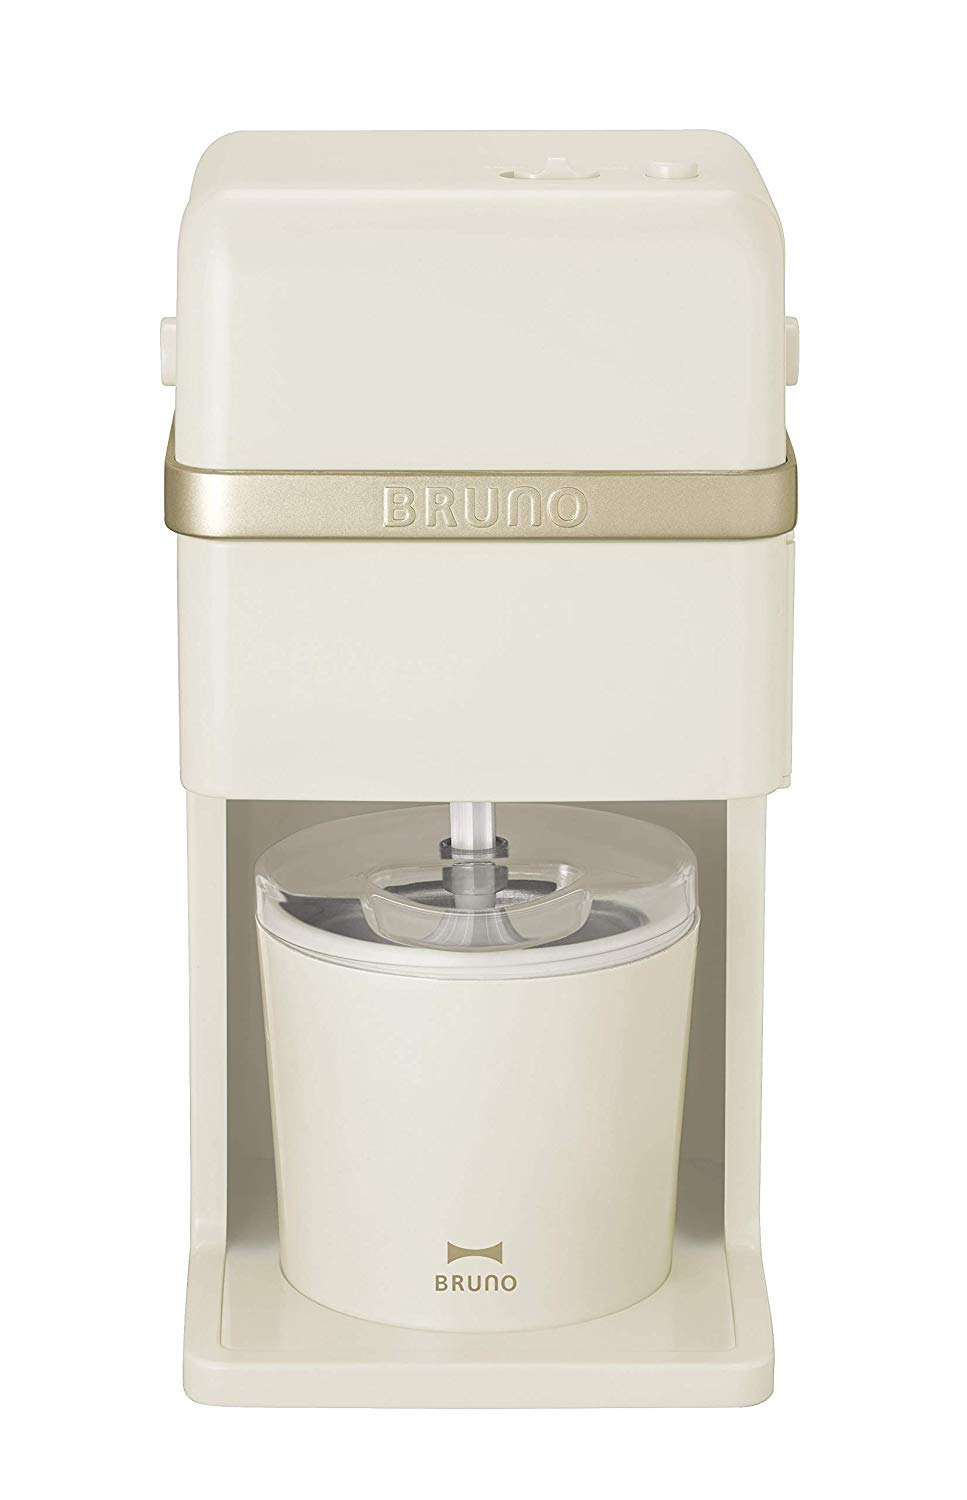 BRUNO Ice Cream & Shaved Ice Maker (Ivory) BOE061-IV【Japan Domestic Genuine Products】【Ships from Japan】